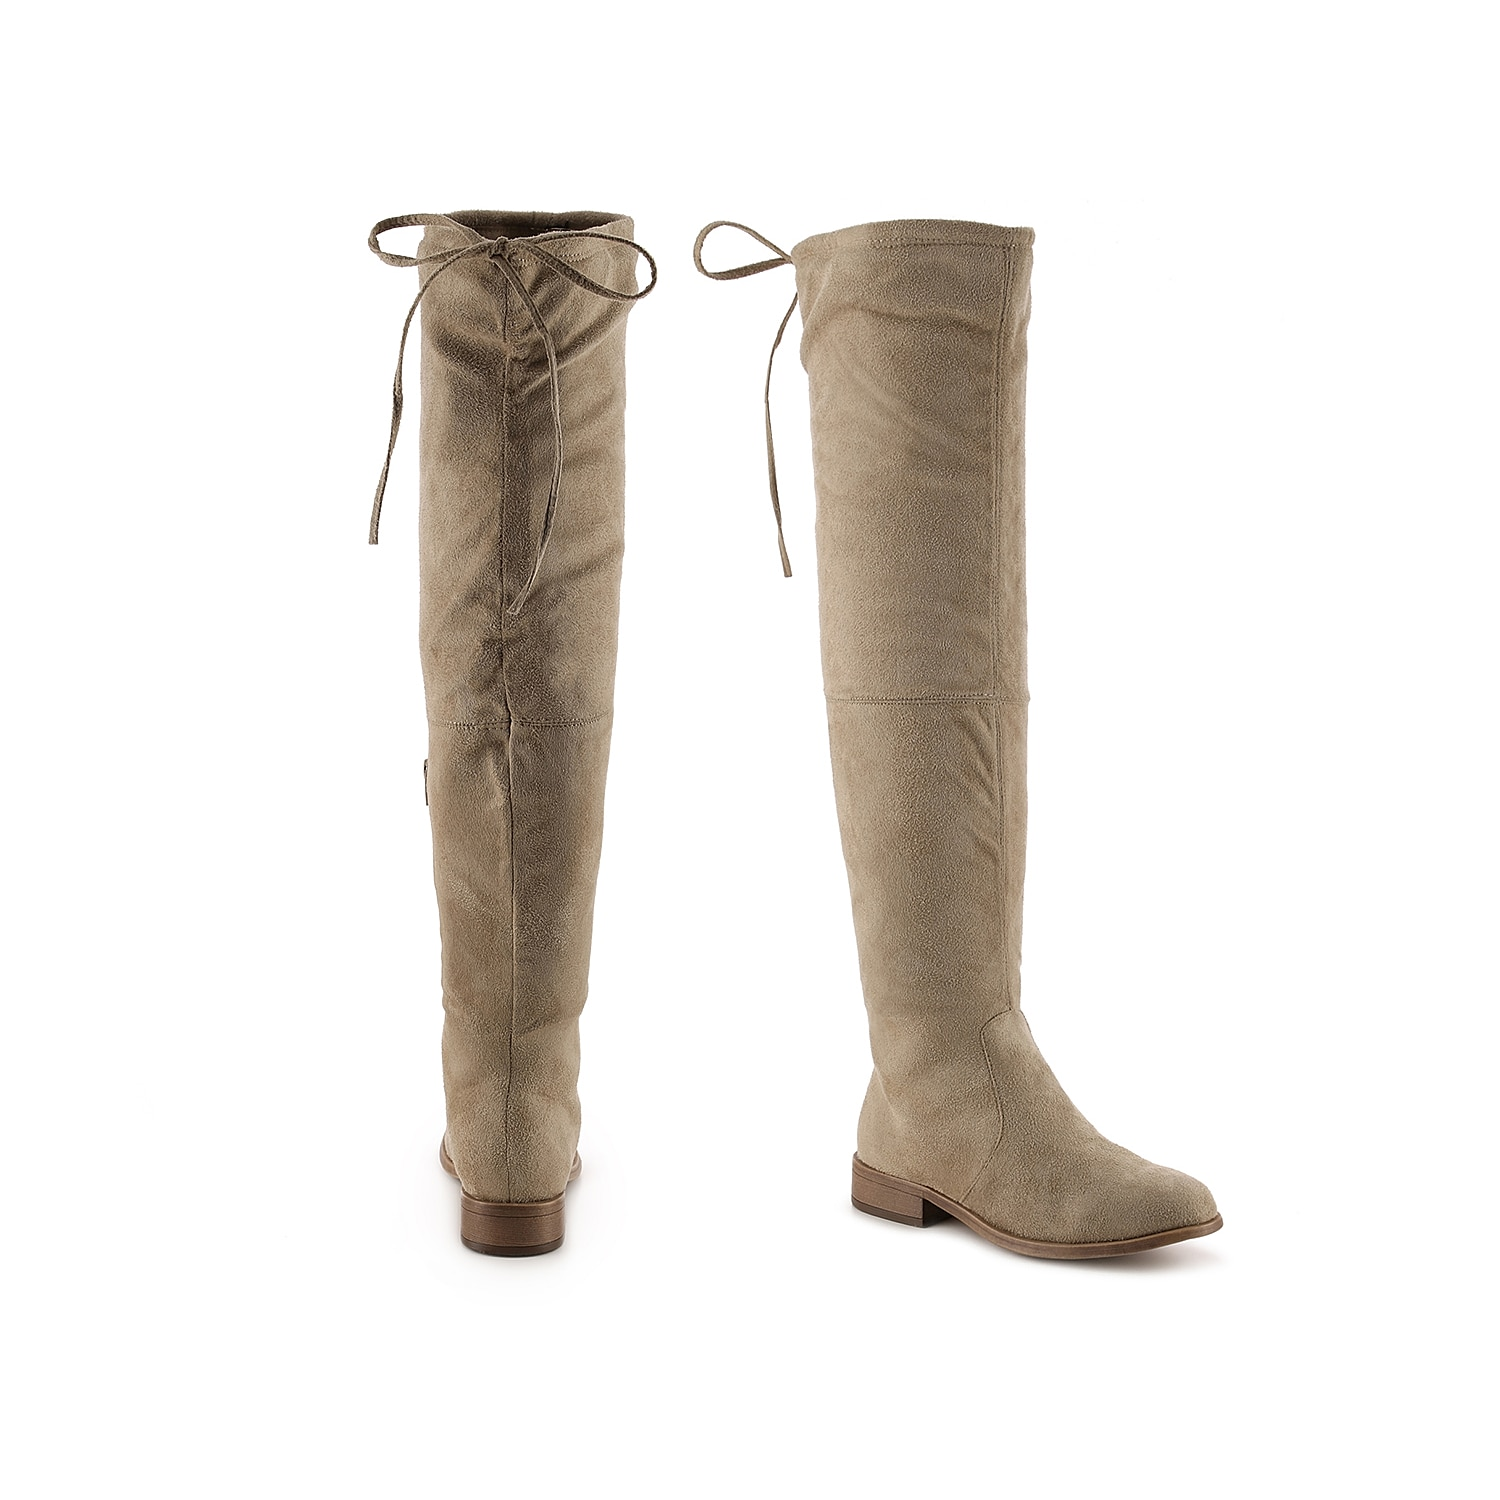 Add to your on-trend wardrobe with the Mount knee high boots from Journee Collection. Zip up in these versatile boots with a skirt or denim for a casual look that is right on trend.Click here for Boot Measuring Guide.